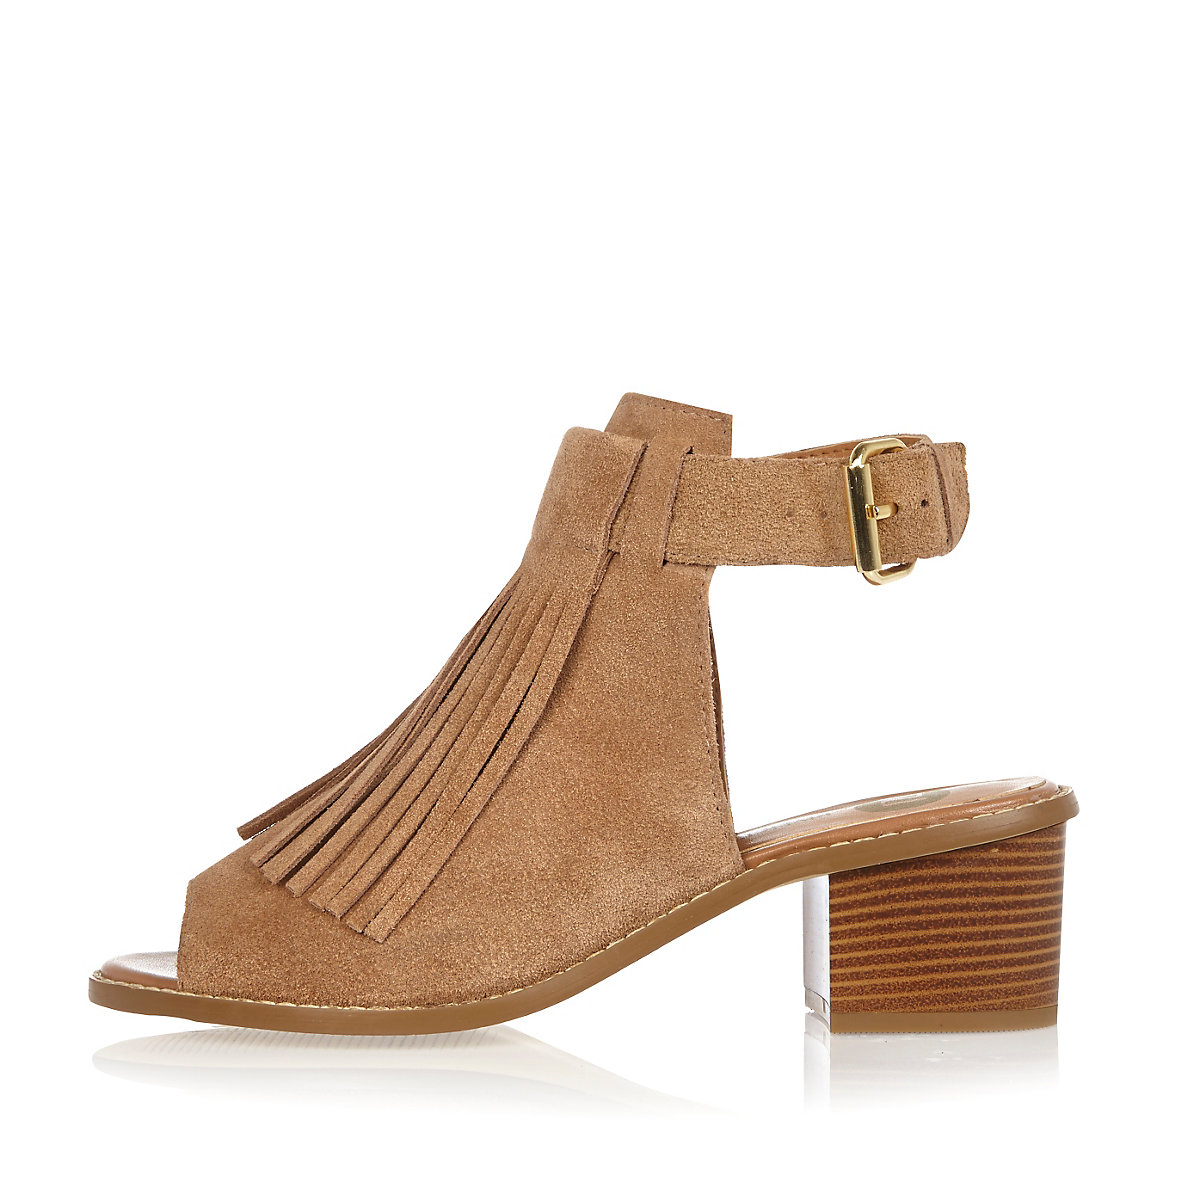 5a296a38273d Beige suede fringed block heel sandals - Sandals - Shoes   Boots - women